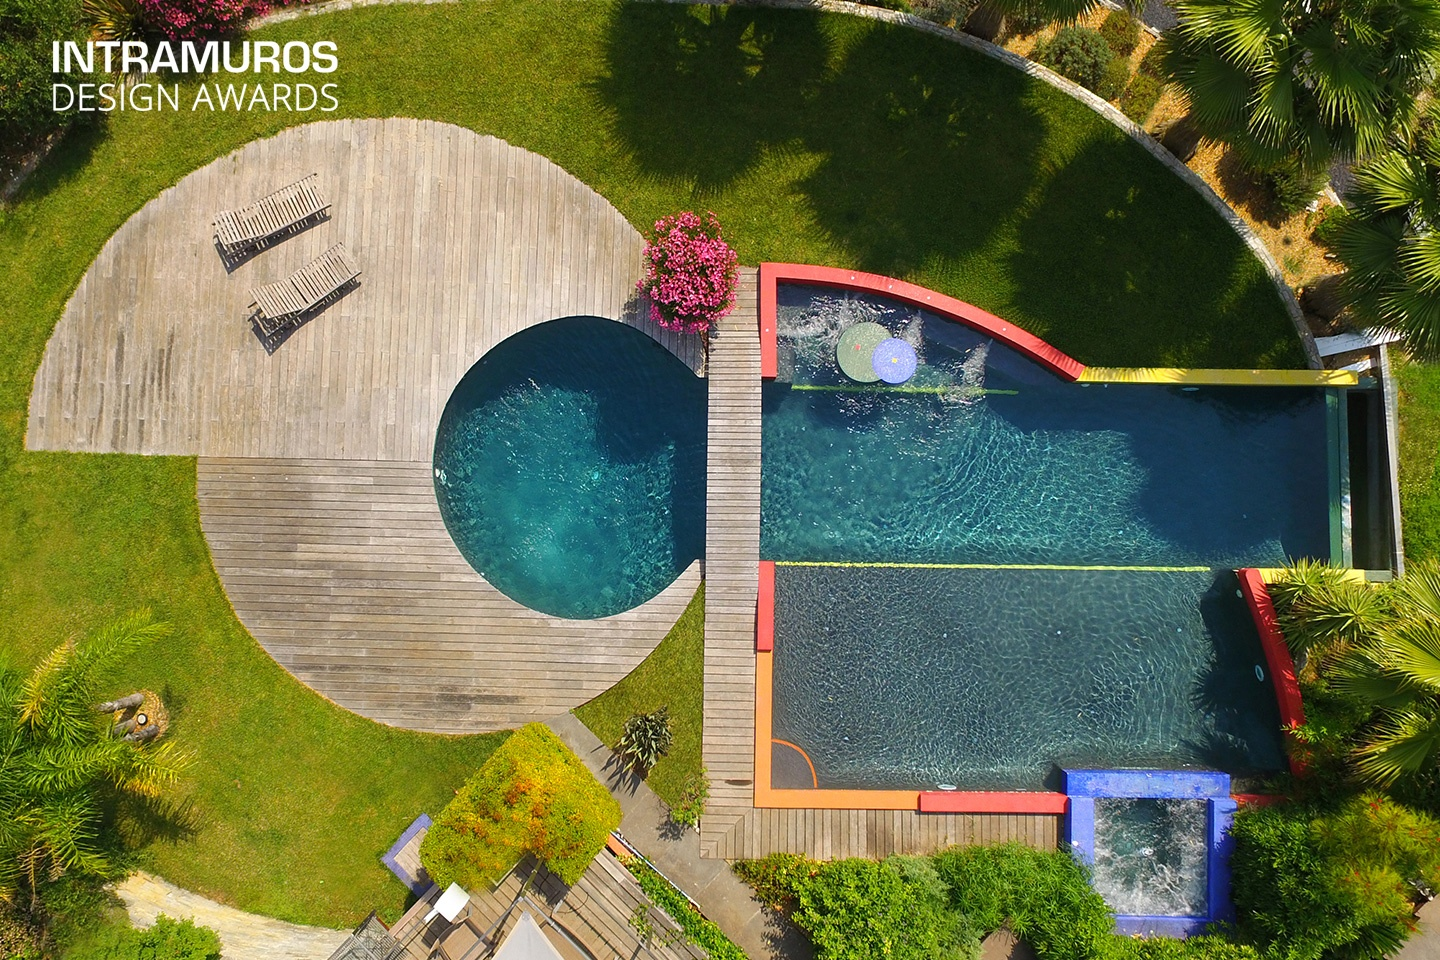 piscine récompensée INTRAMUROS DESIGN AWARDS 2018